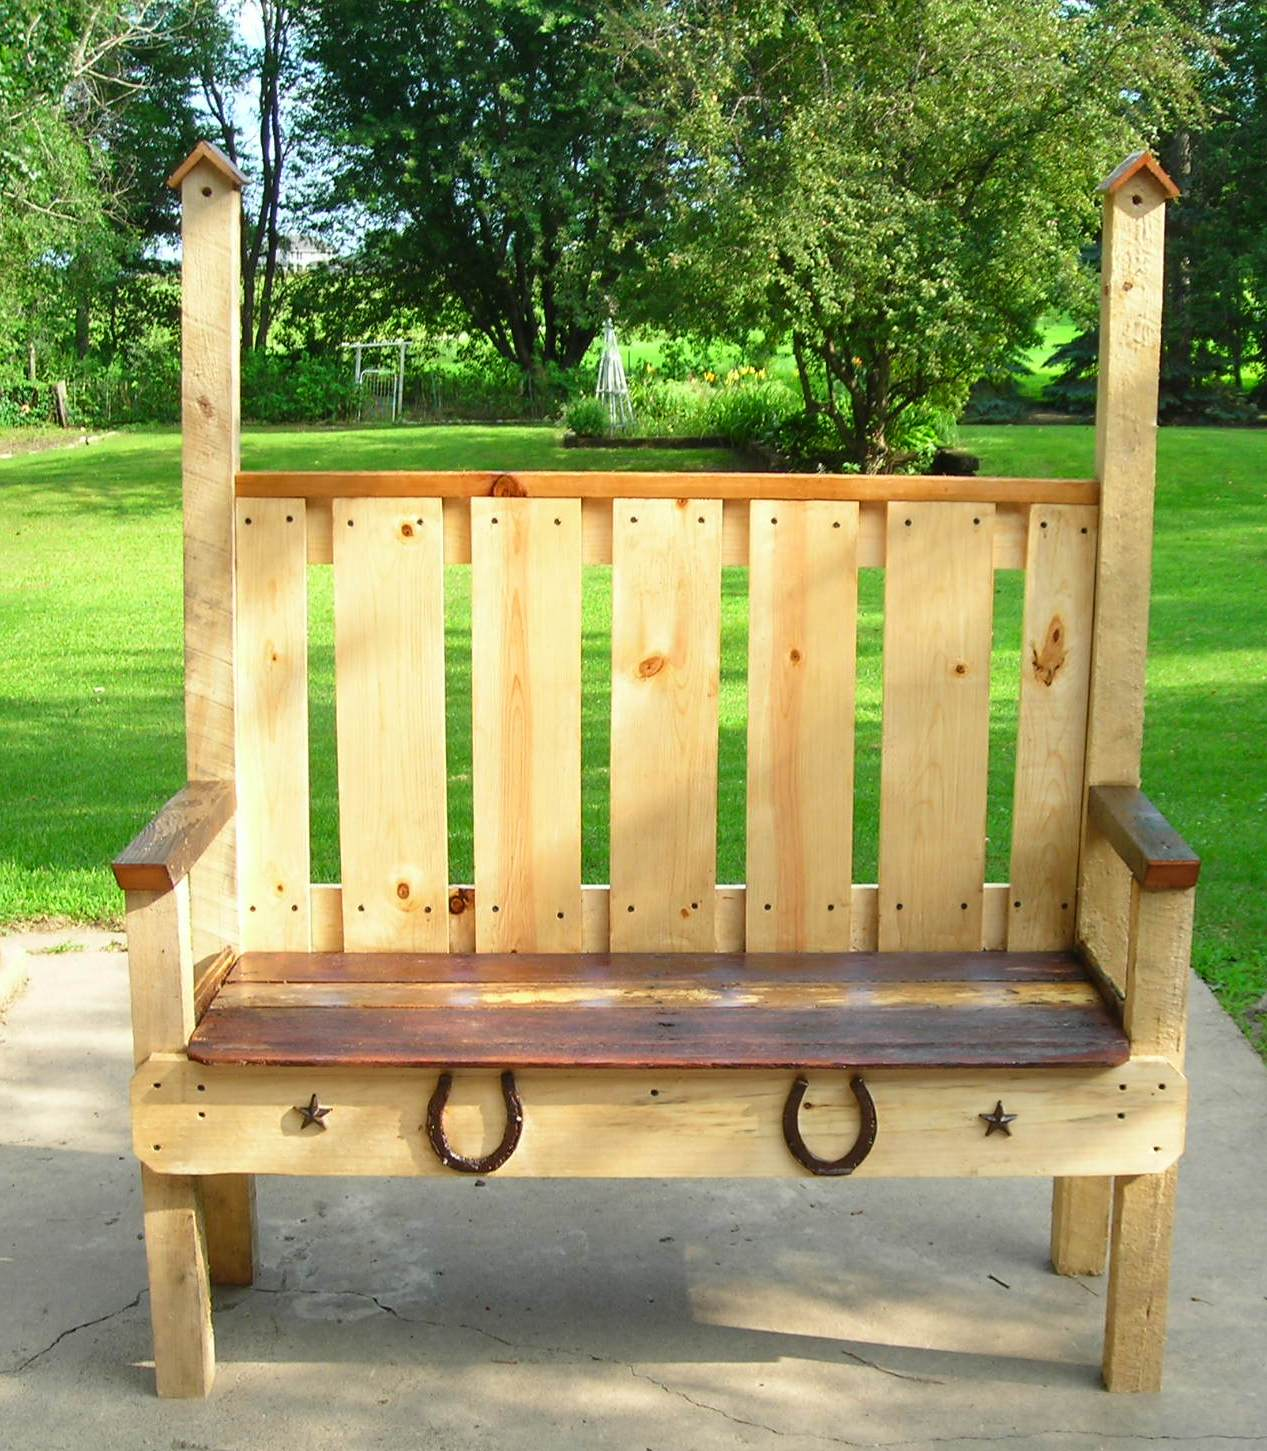 Rustic Birdhouses A New Bench By Rons Rustic Birdhouseshope You Like It